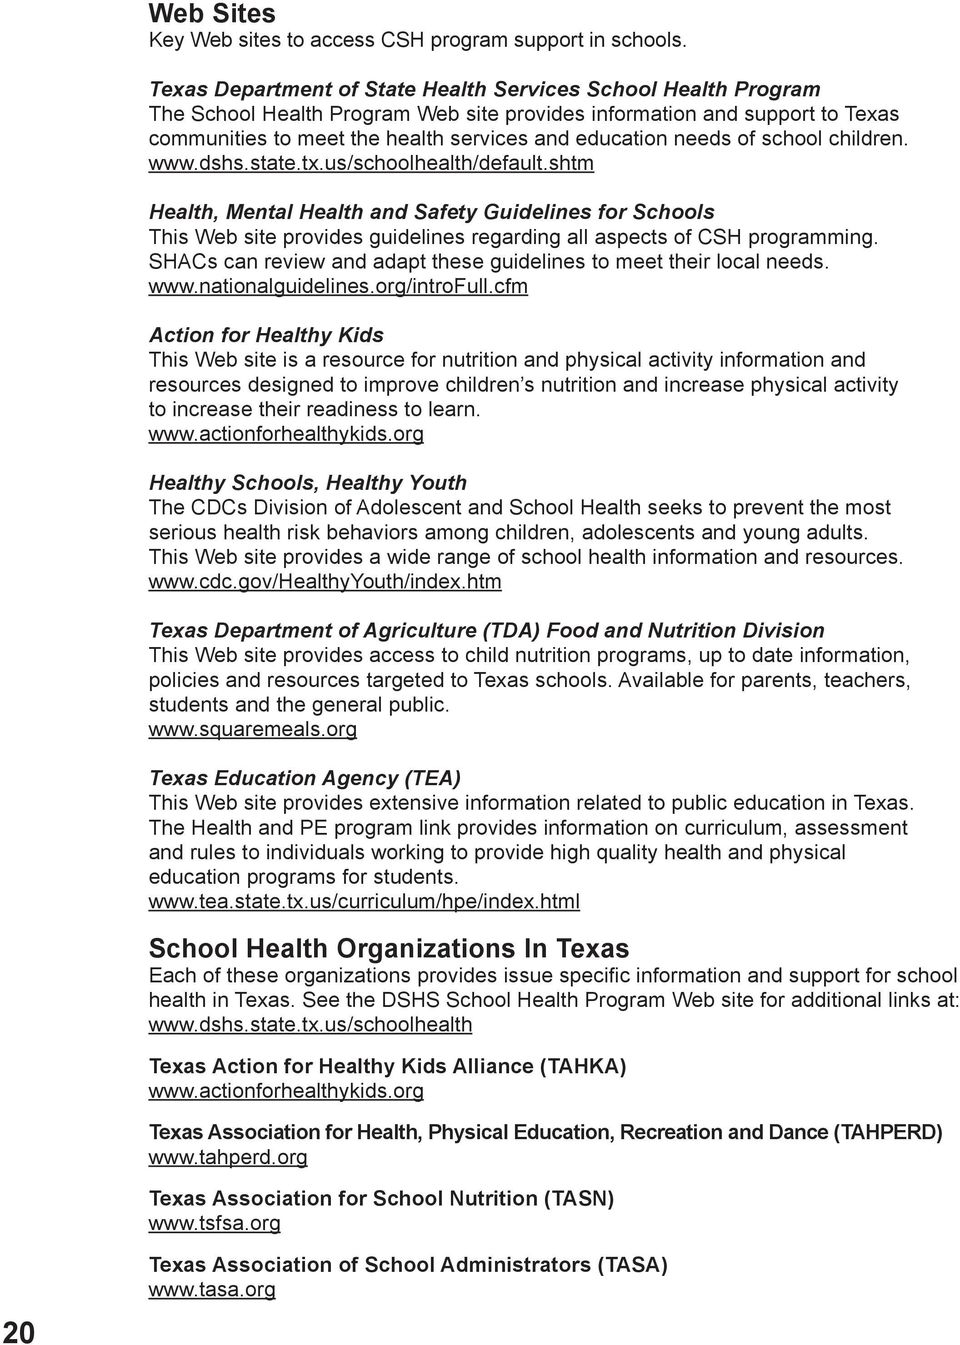 needs of school children. www.dshs.state.tx.us/schoolhealth/default.